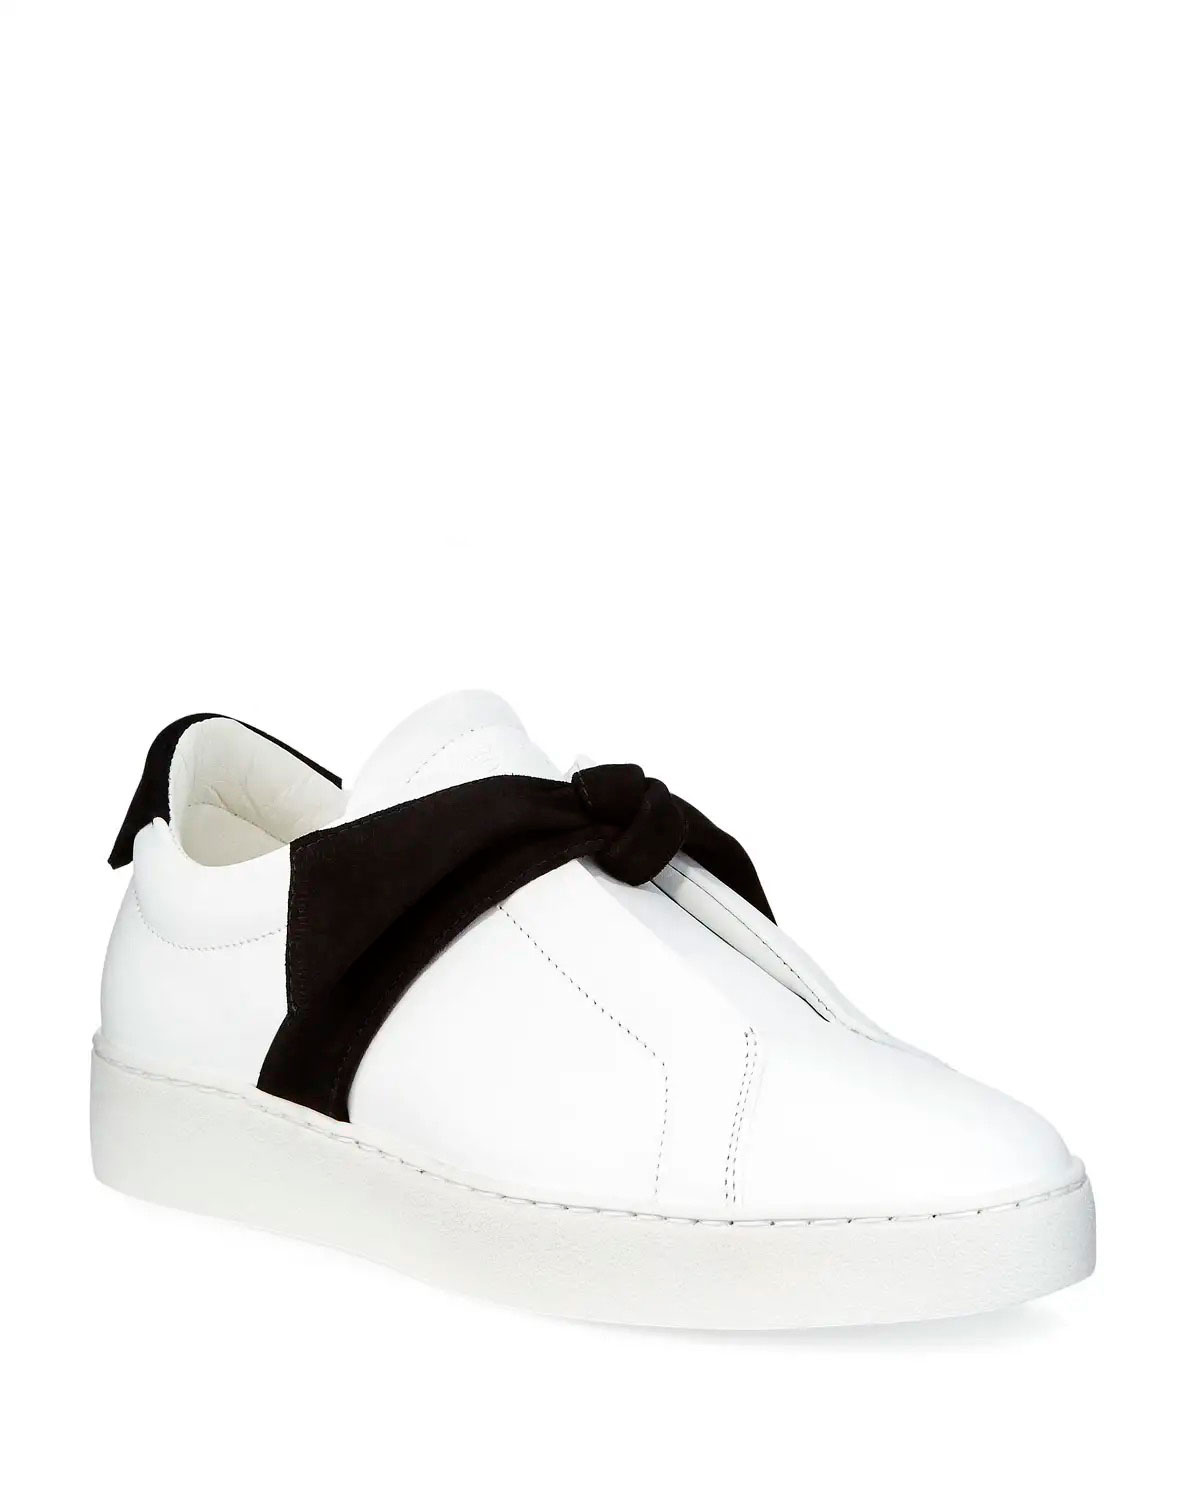 Alexandre Birman Clarita Two-Tone Sneakers, White/Black